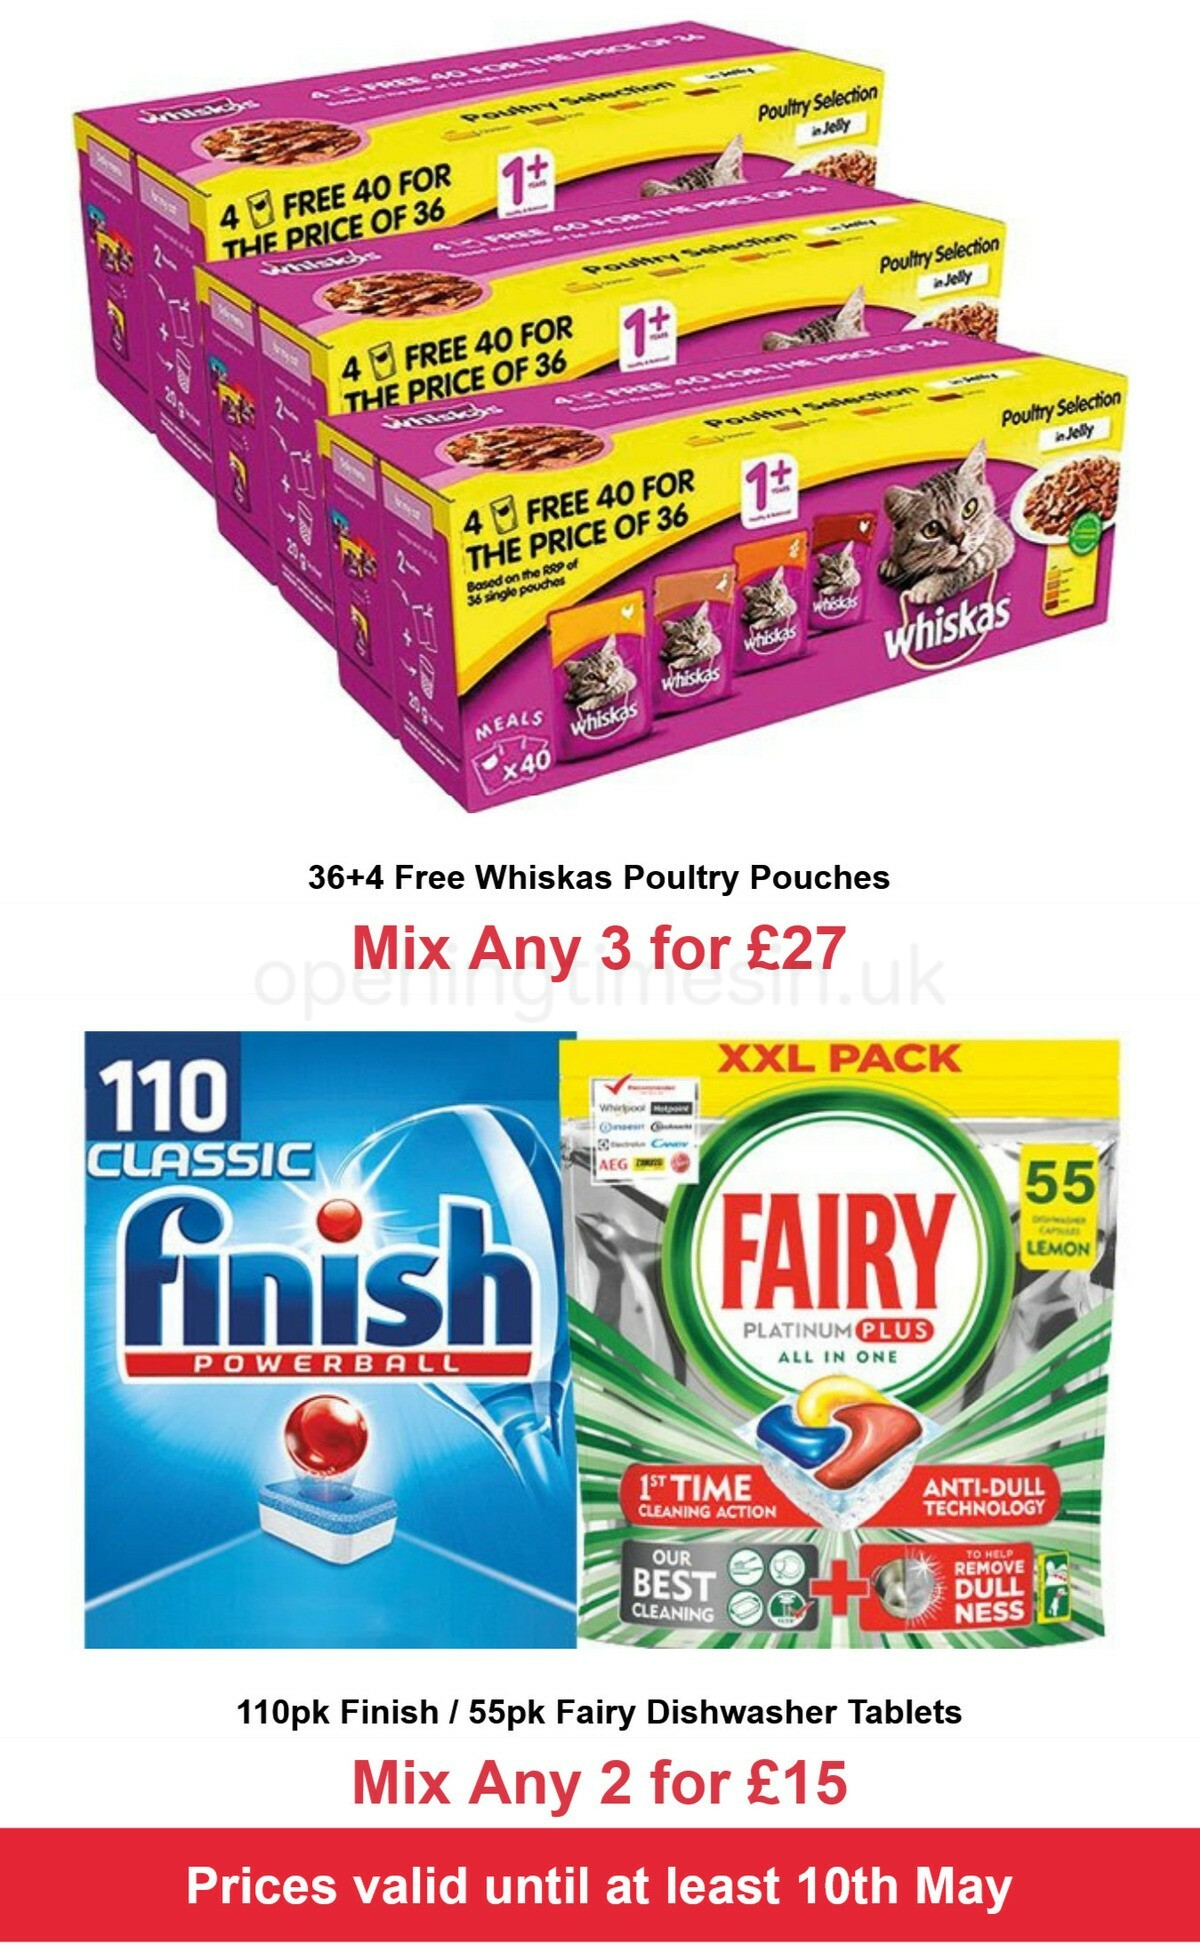 Farmfoods Offers from April 29